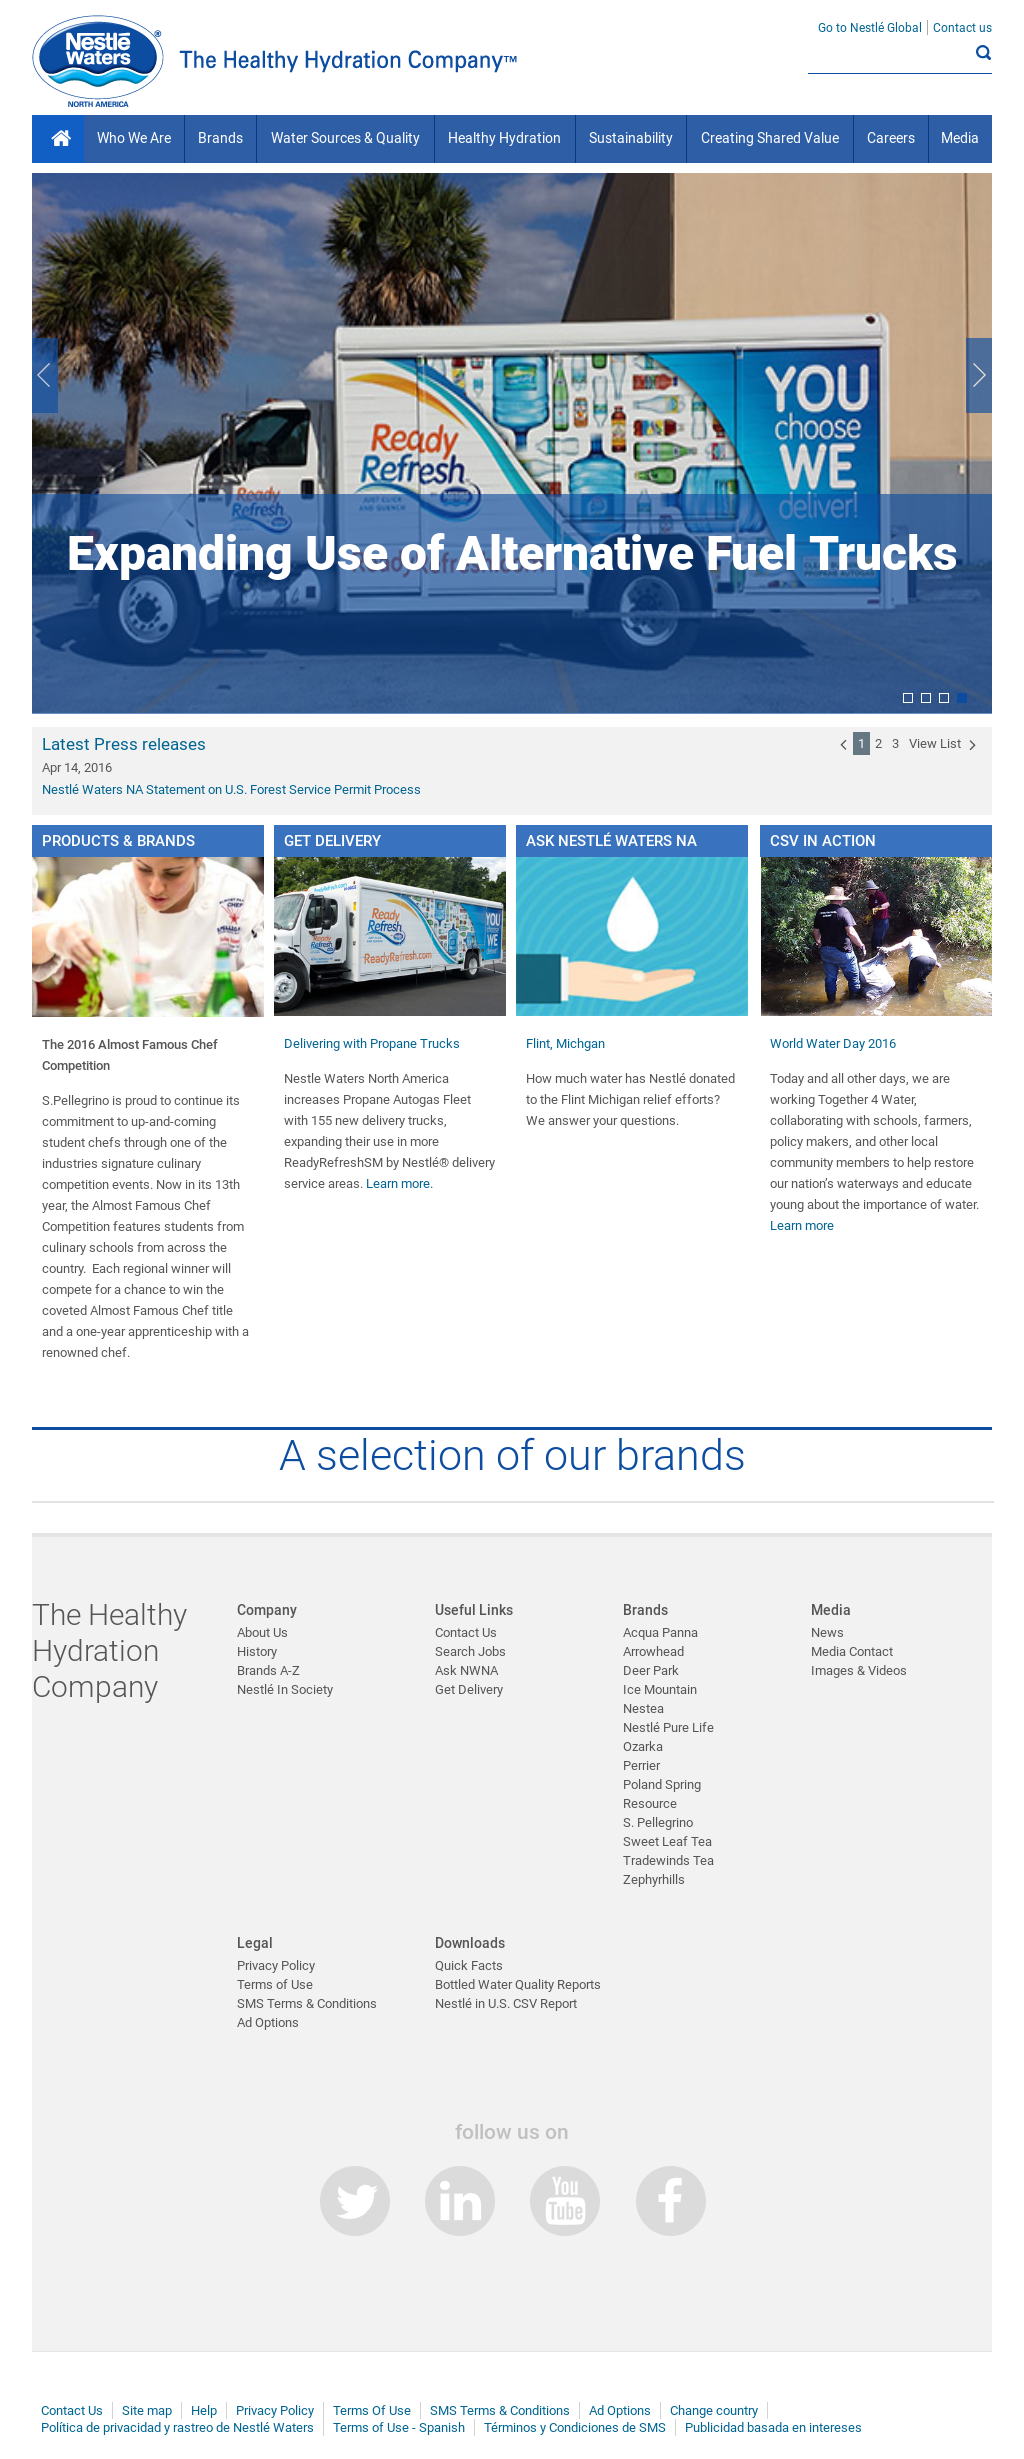 Nestle Waters NA Competitors, Revenue and Employees - Owler